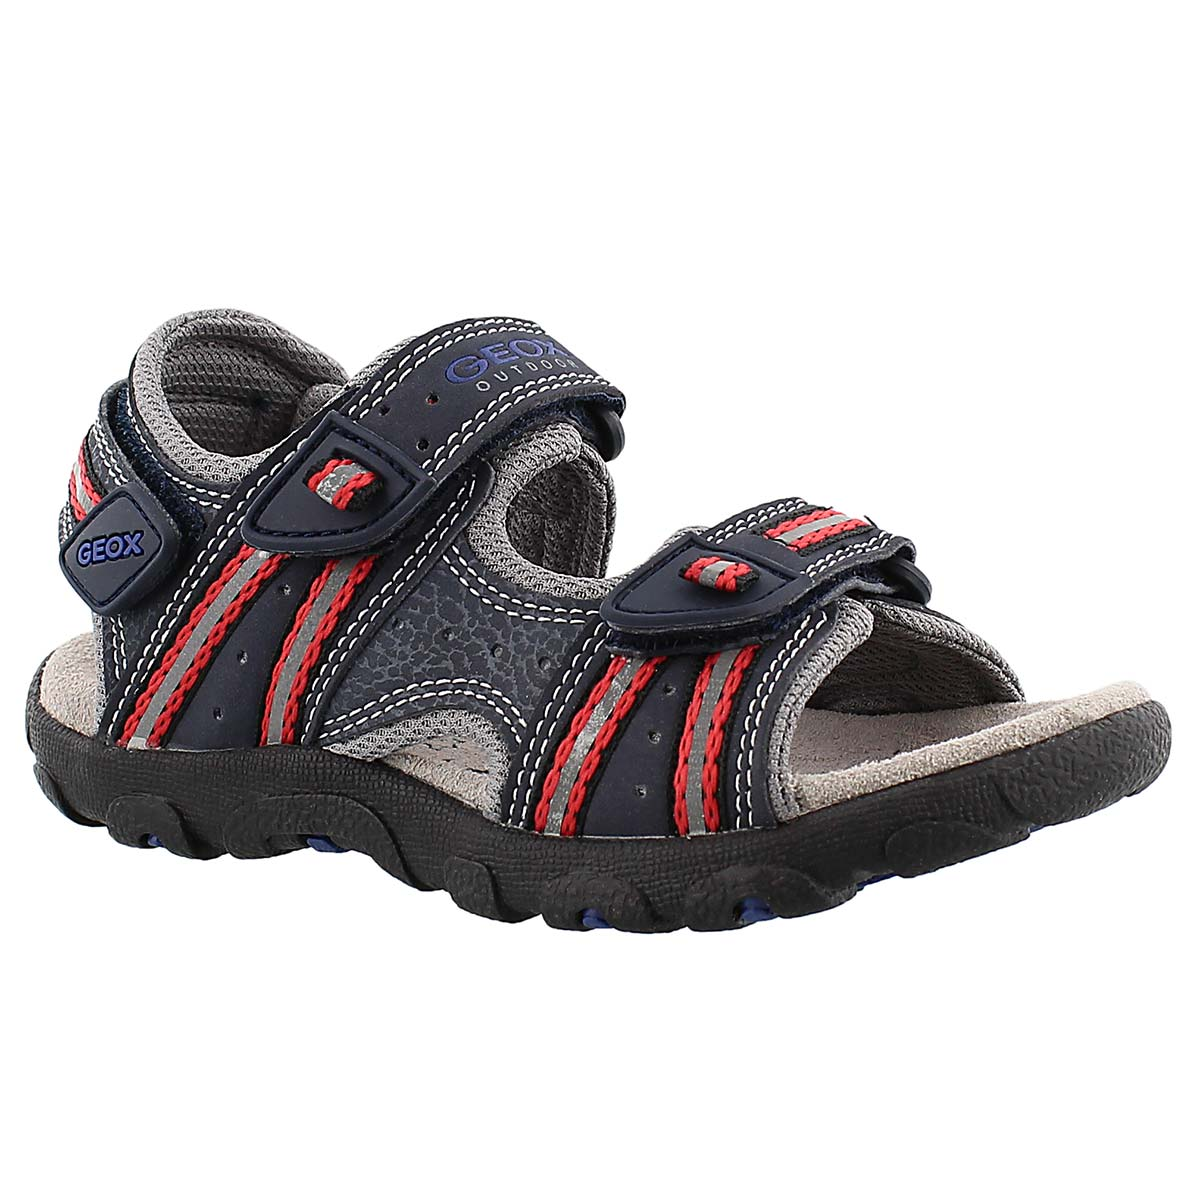 Boys' STRADA navy/red sport sandals